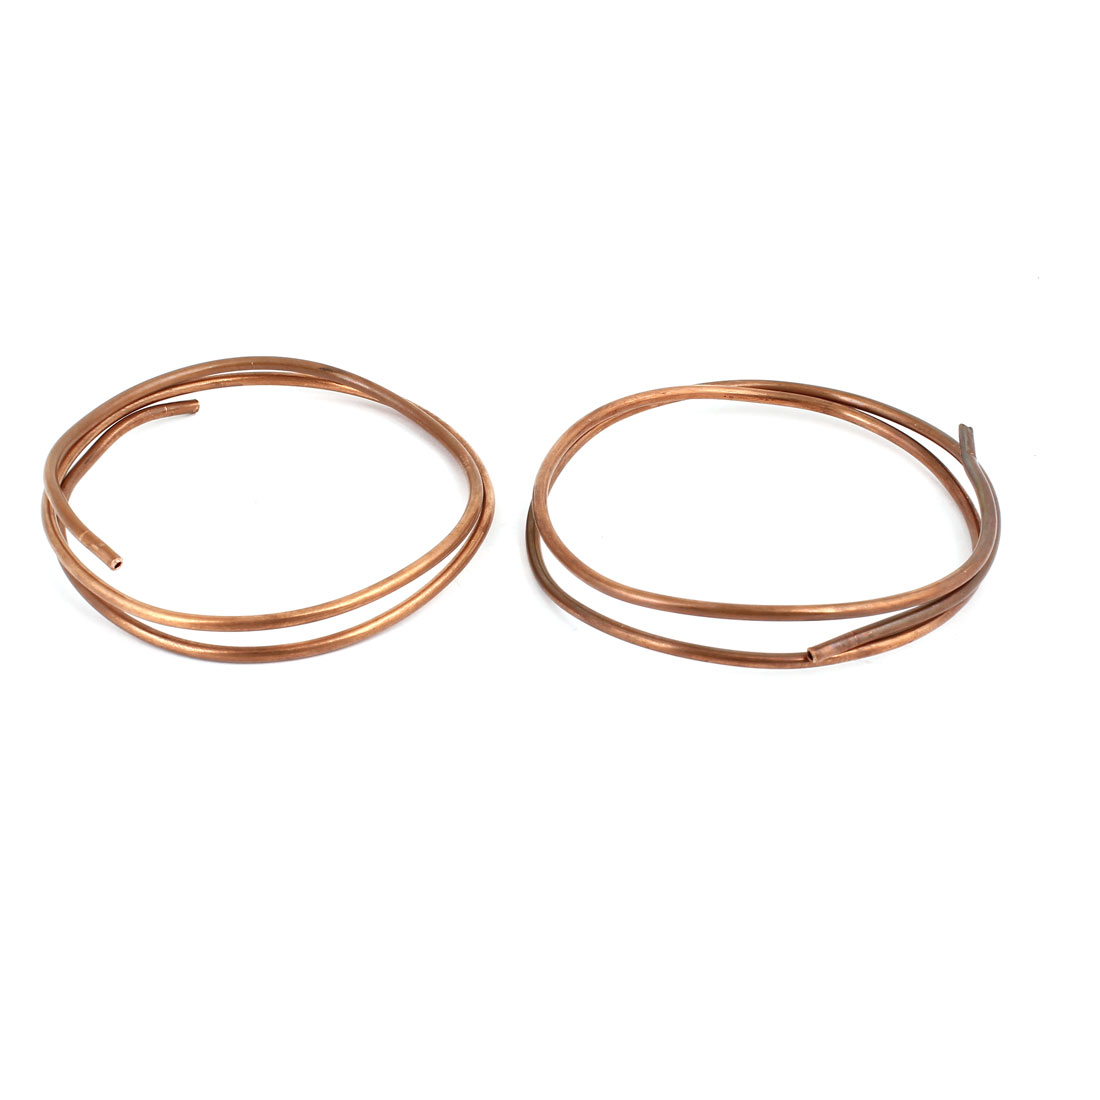 3.0mm Dia 0.6M 2Ft Length Copper Tone Refrigerator Refrigeration Tubing Coil 2 Pcs